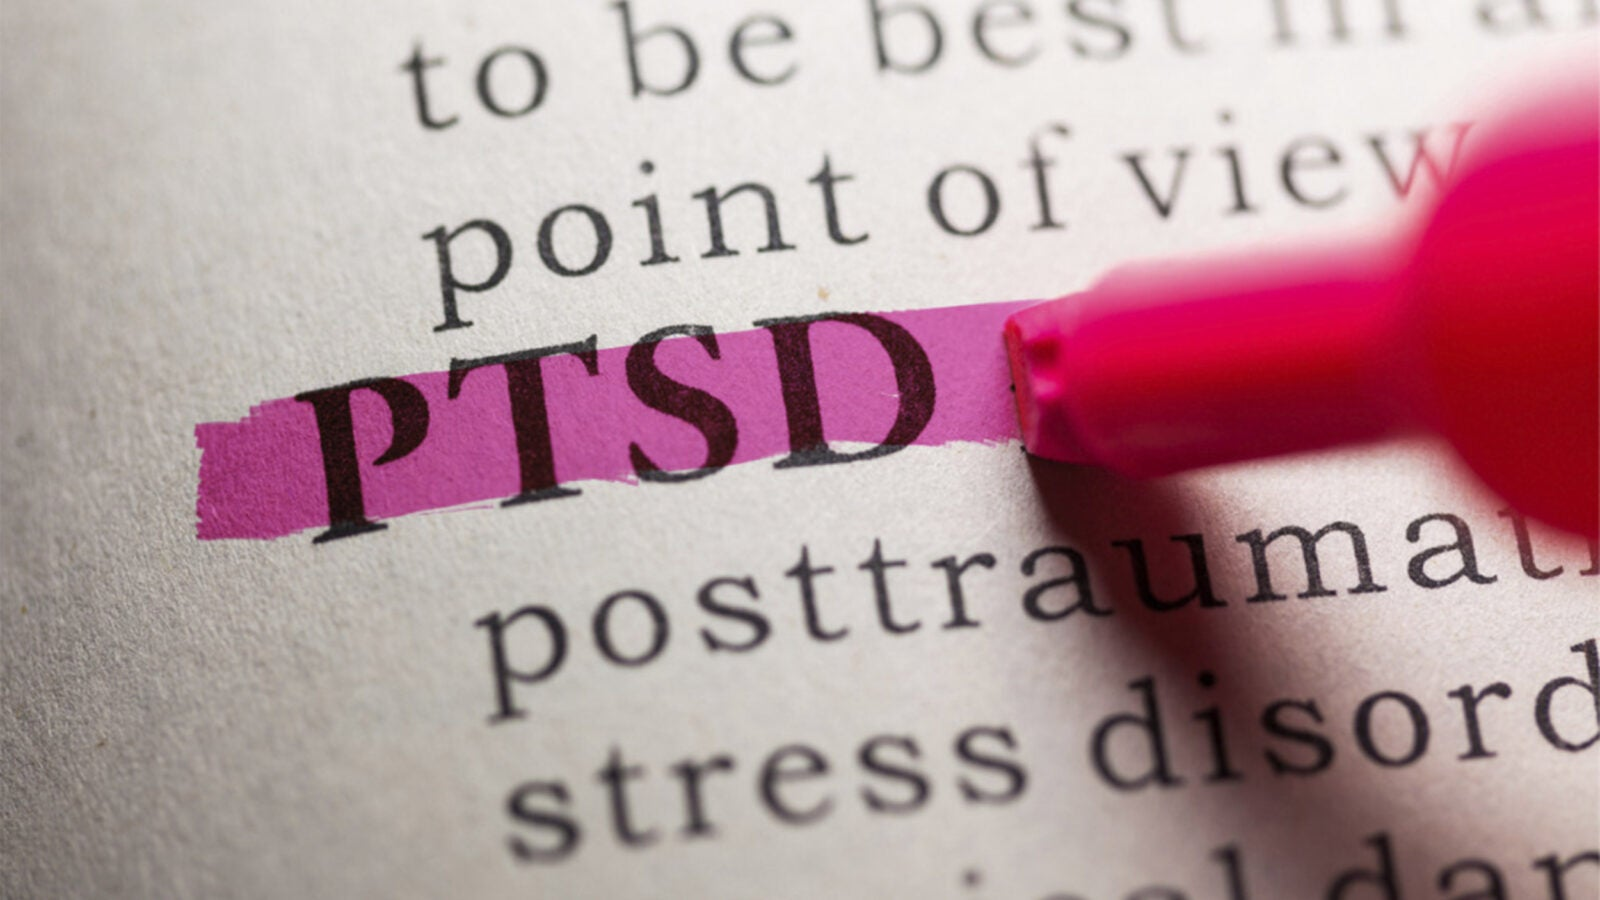 PTSD marked in book